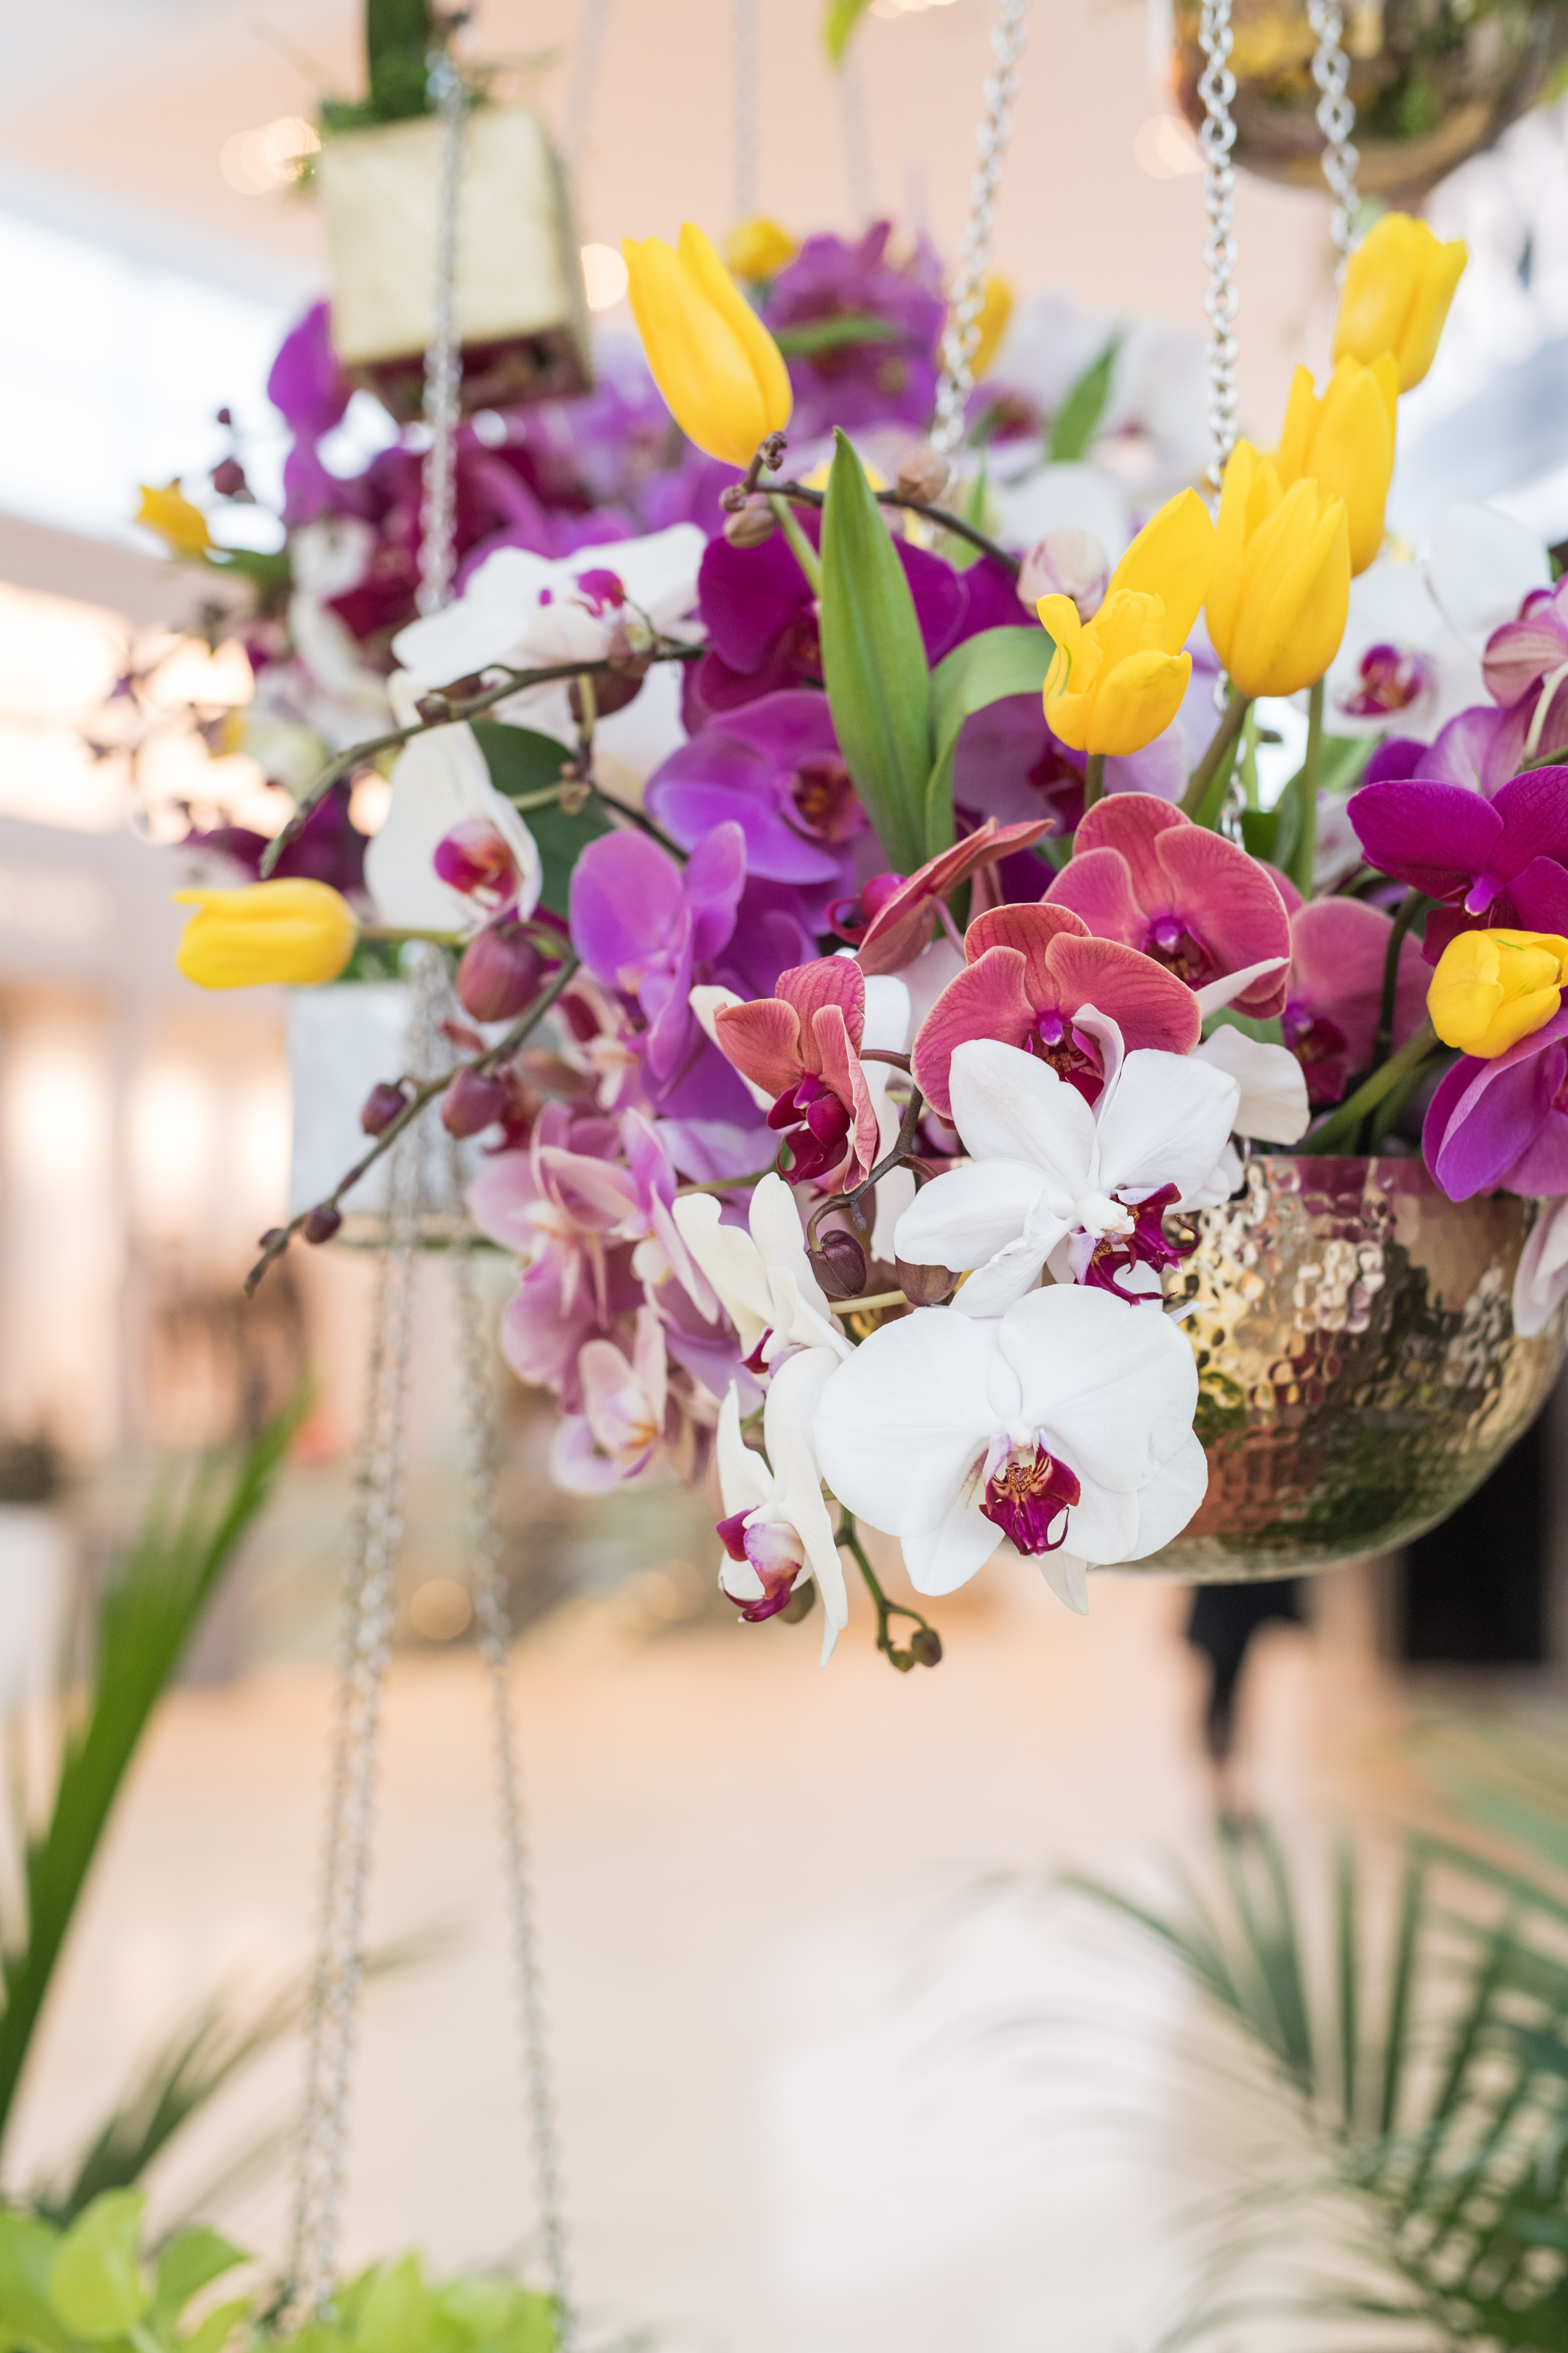 August In Bloom - Orchid and lily flower pot - #SQ1Bridal (Square One Shopping Centre)